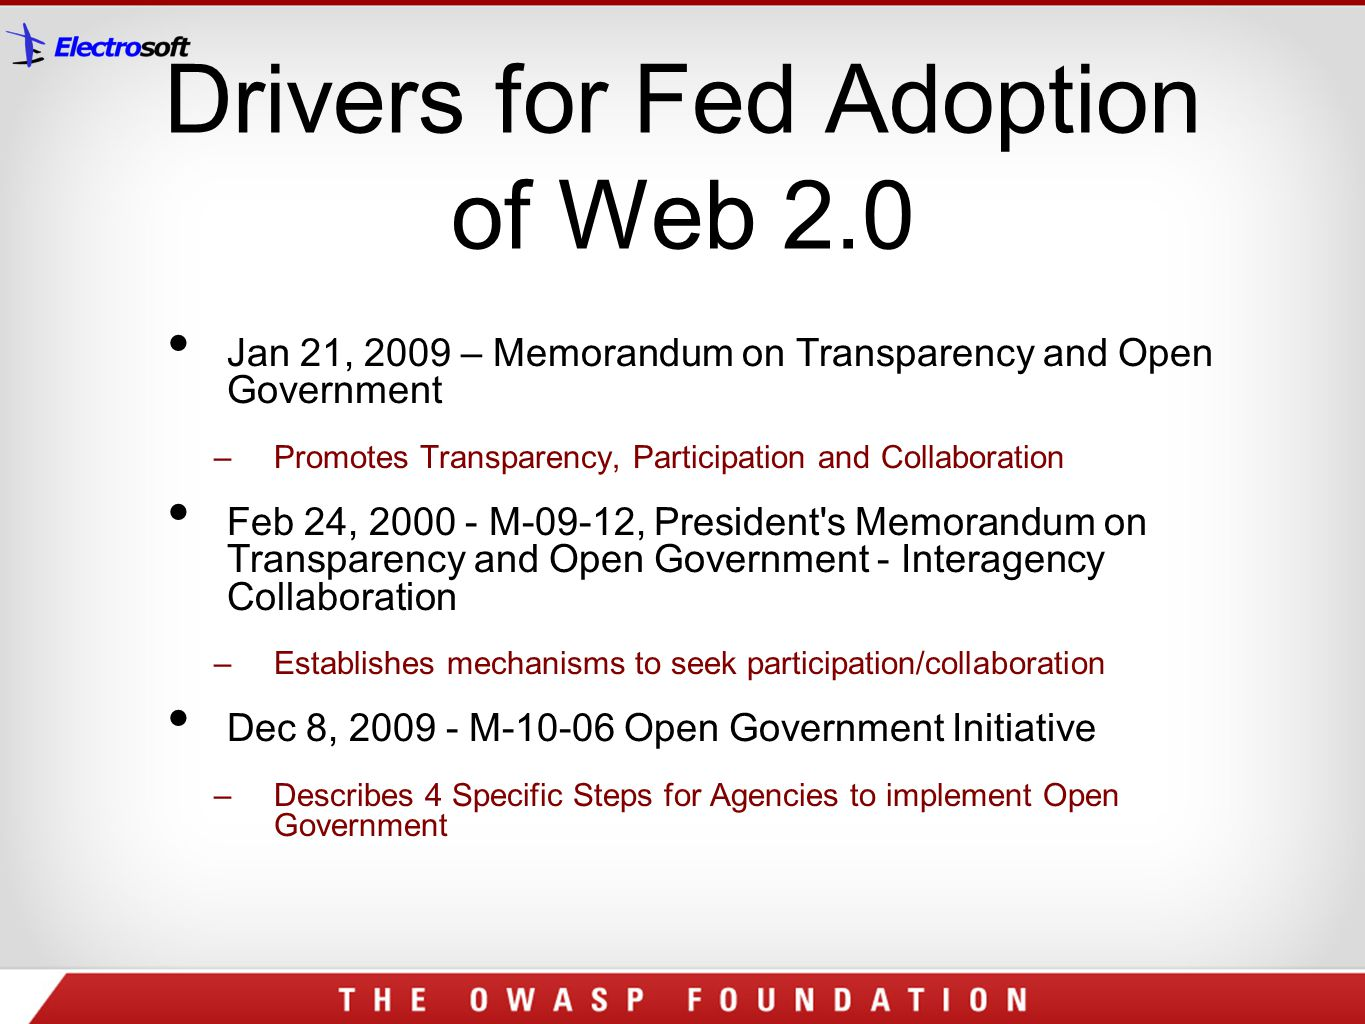 Drivers for Fed Adoption of Web 2.0